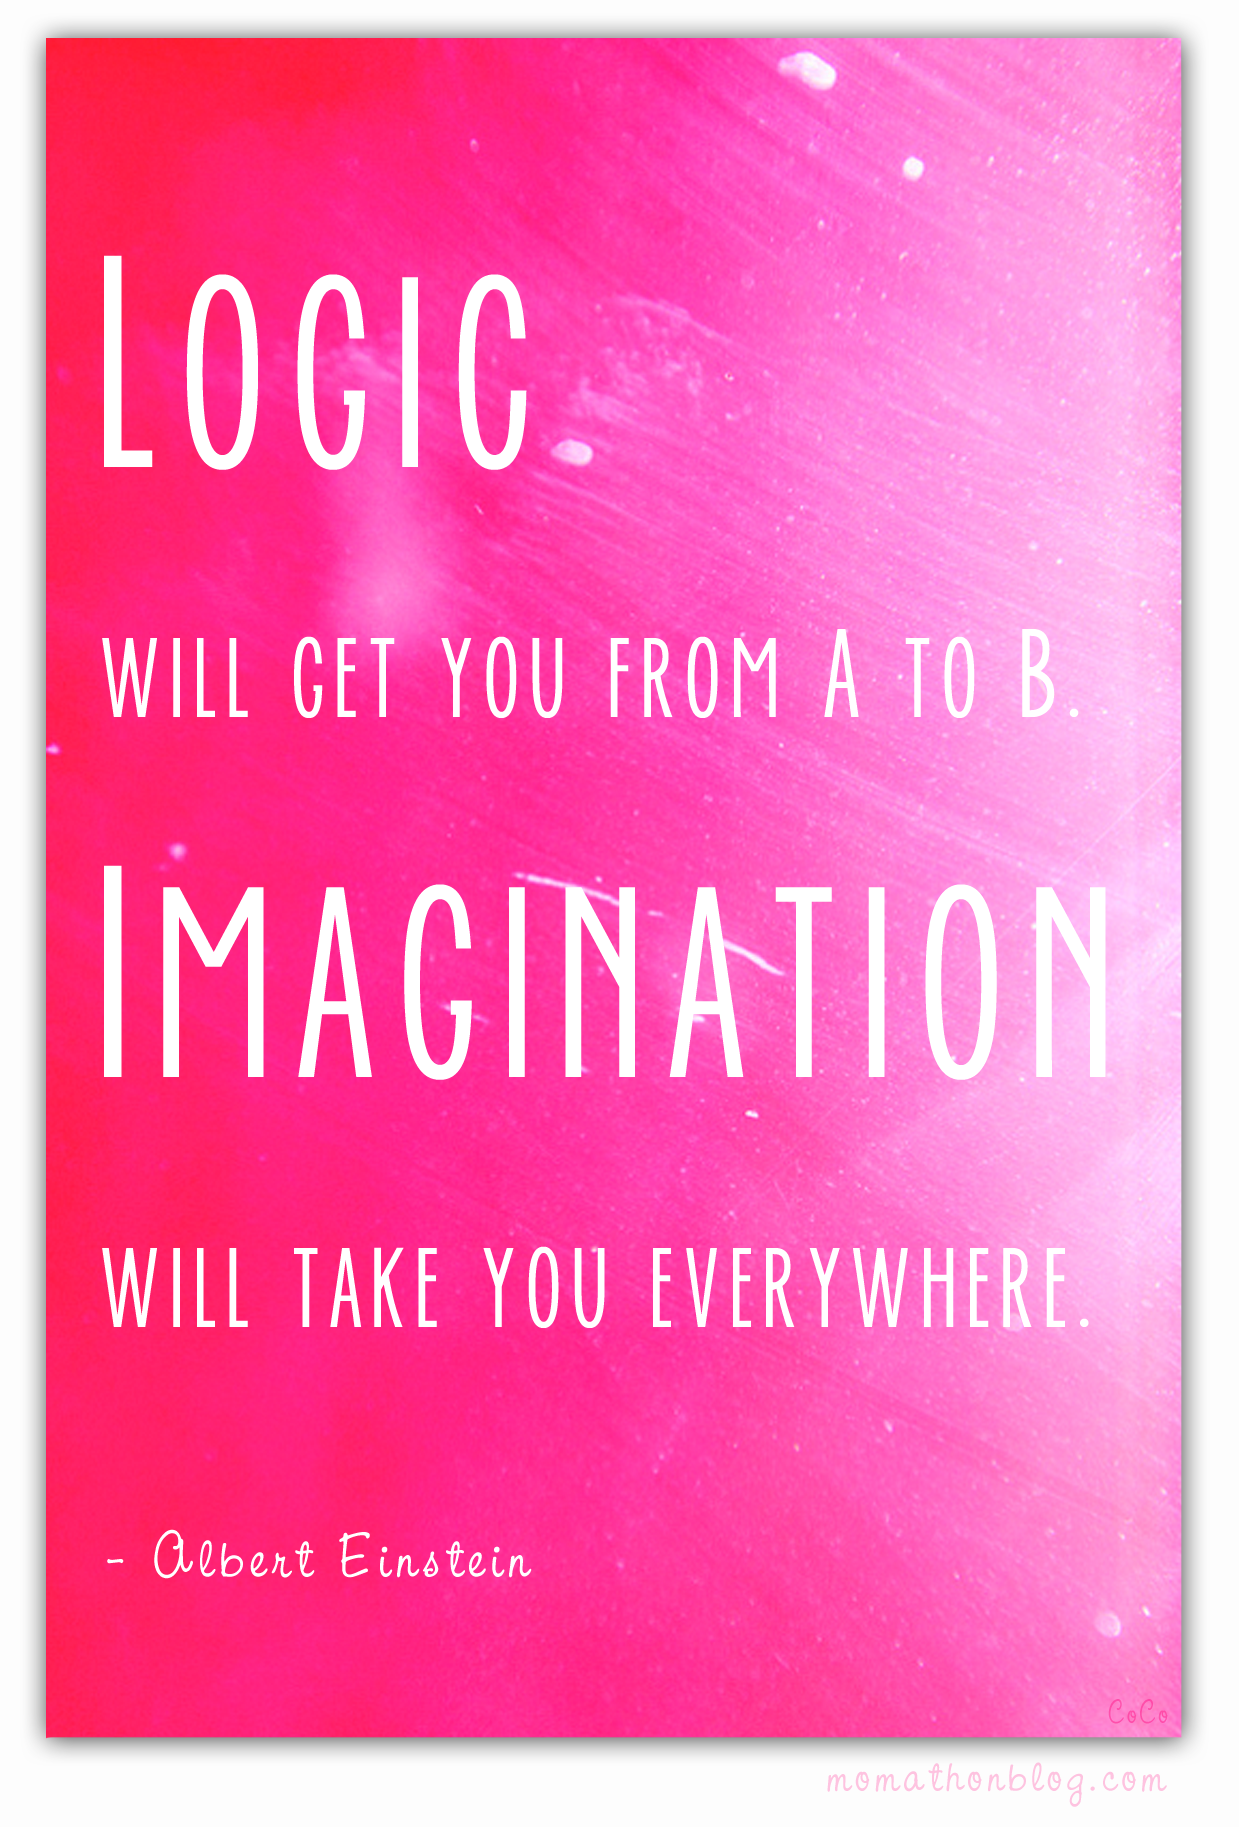 Einstein quote (graphic by Chris Olson)